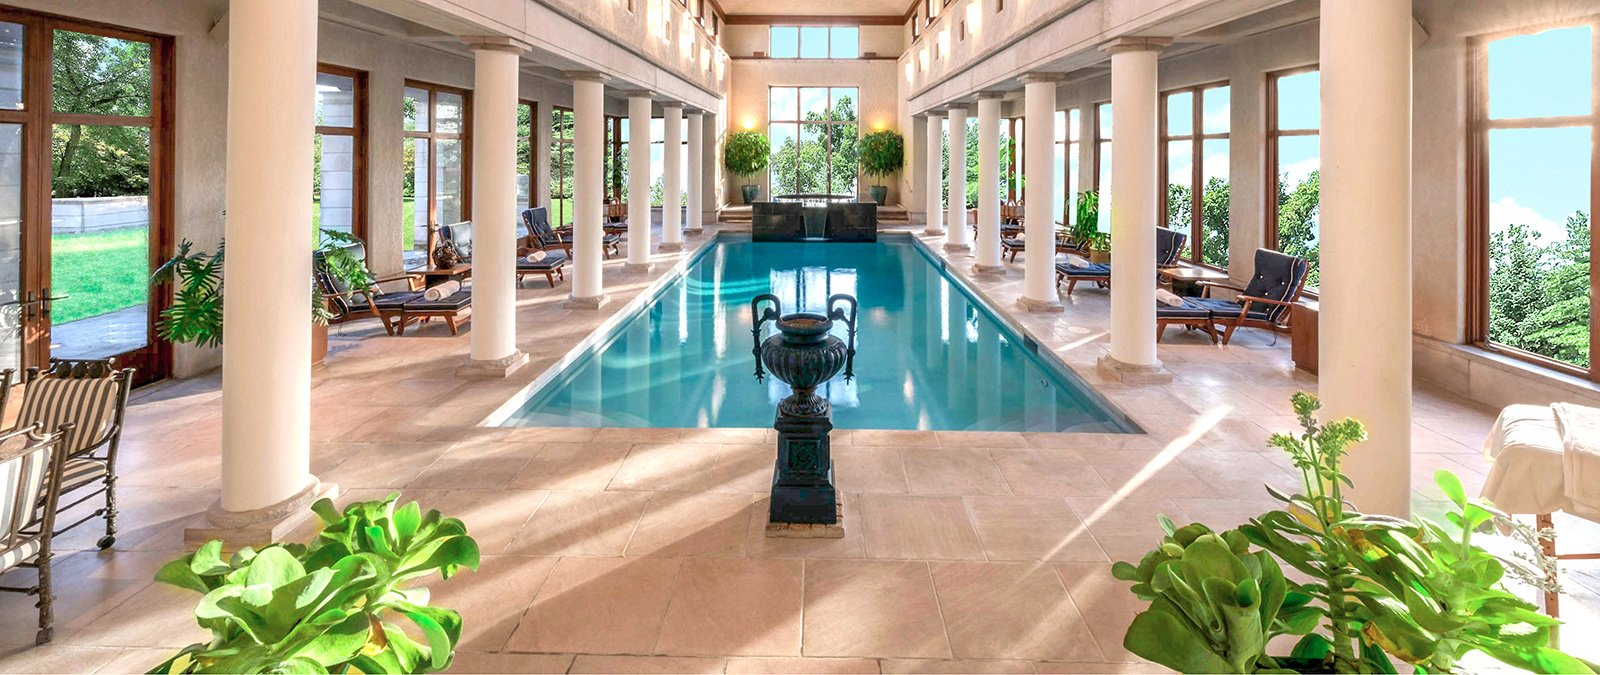 Luxus Outdoor Pool The World S Most Luxurious Indoor Swimming Pools